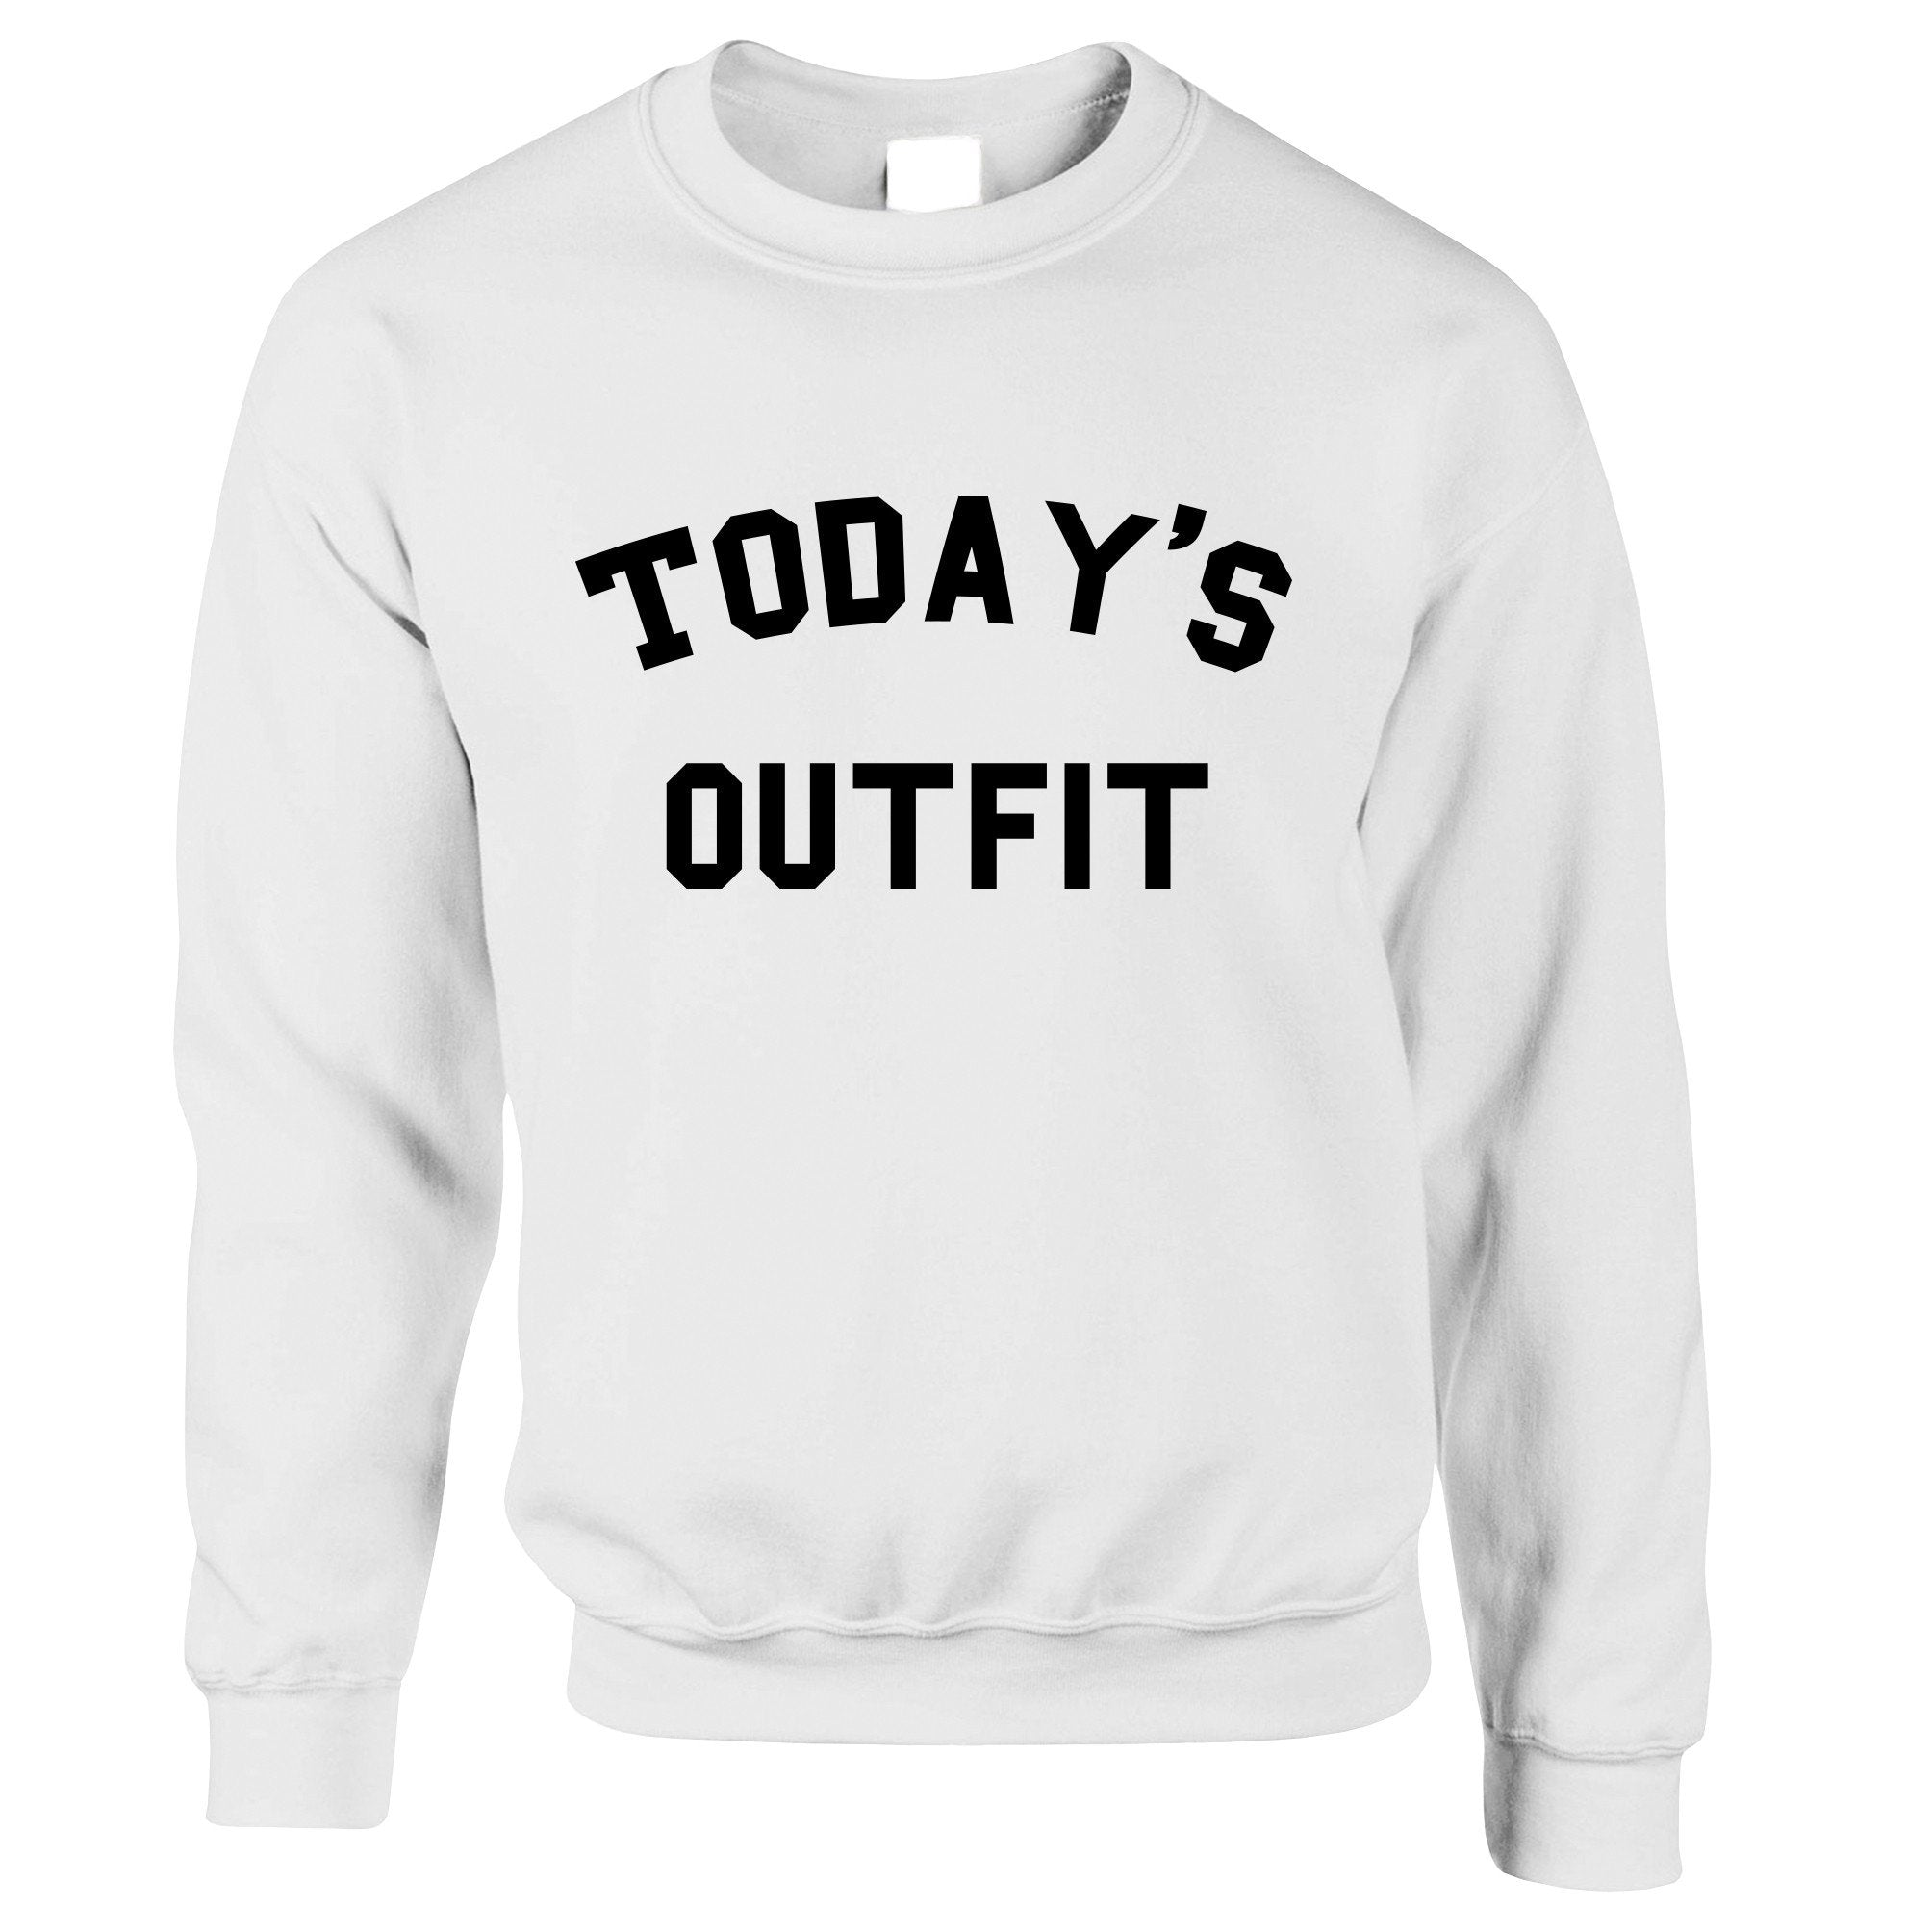 Novelty Slogan Jumper This Is Today's Outfit Sweatshirt Sweater